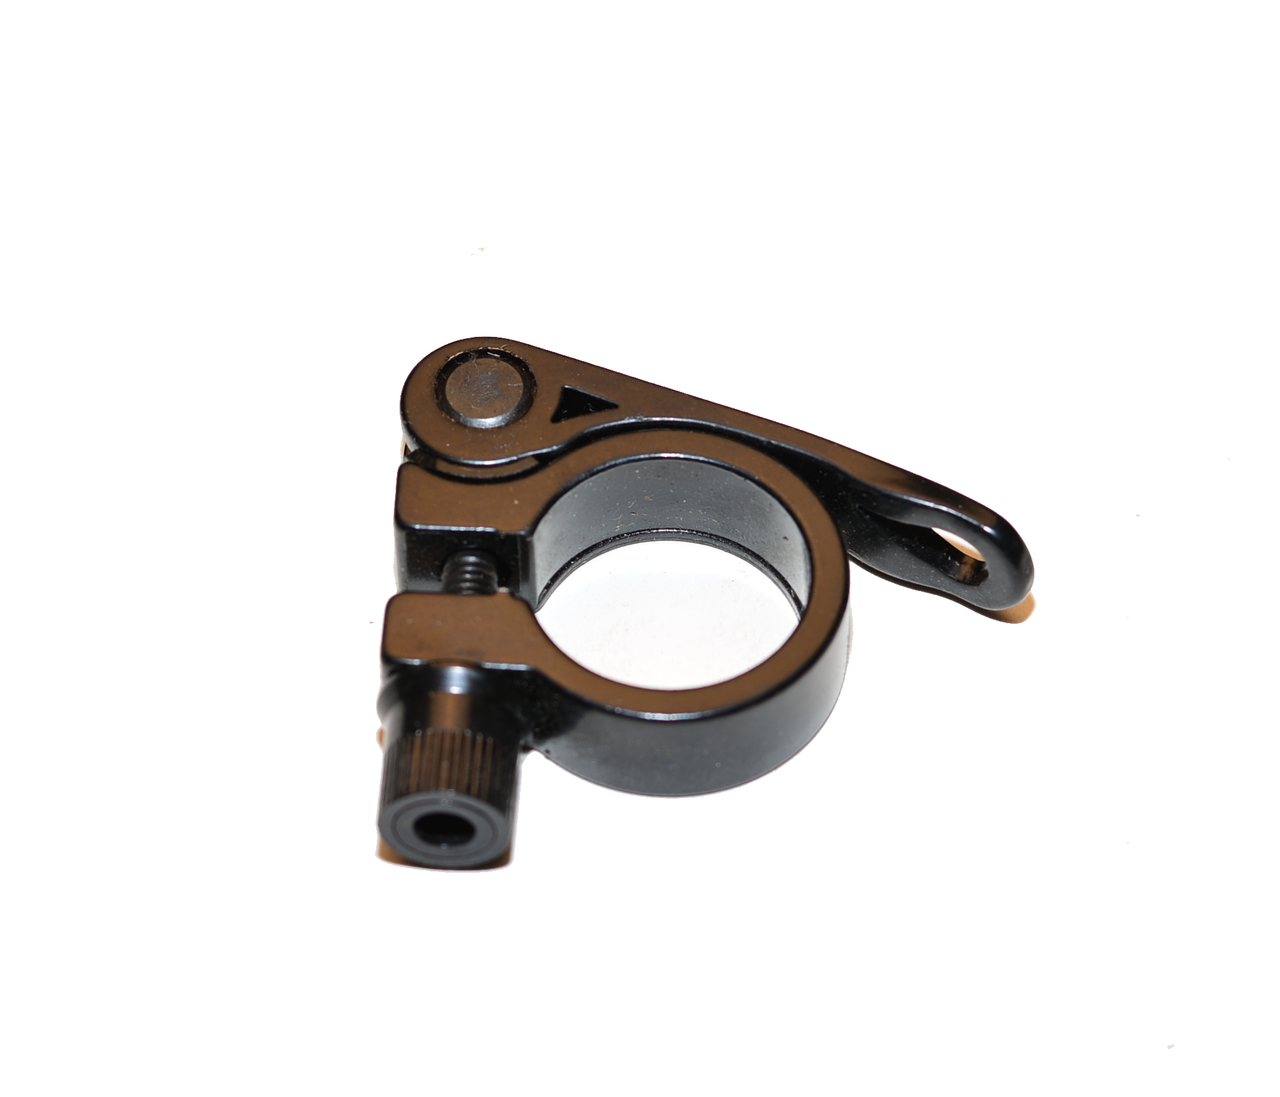 Replacement Seat Clamp (Black)